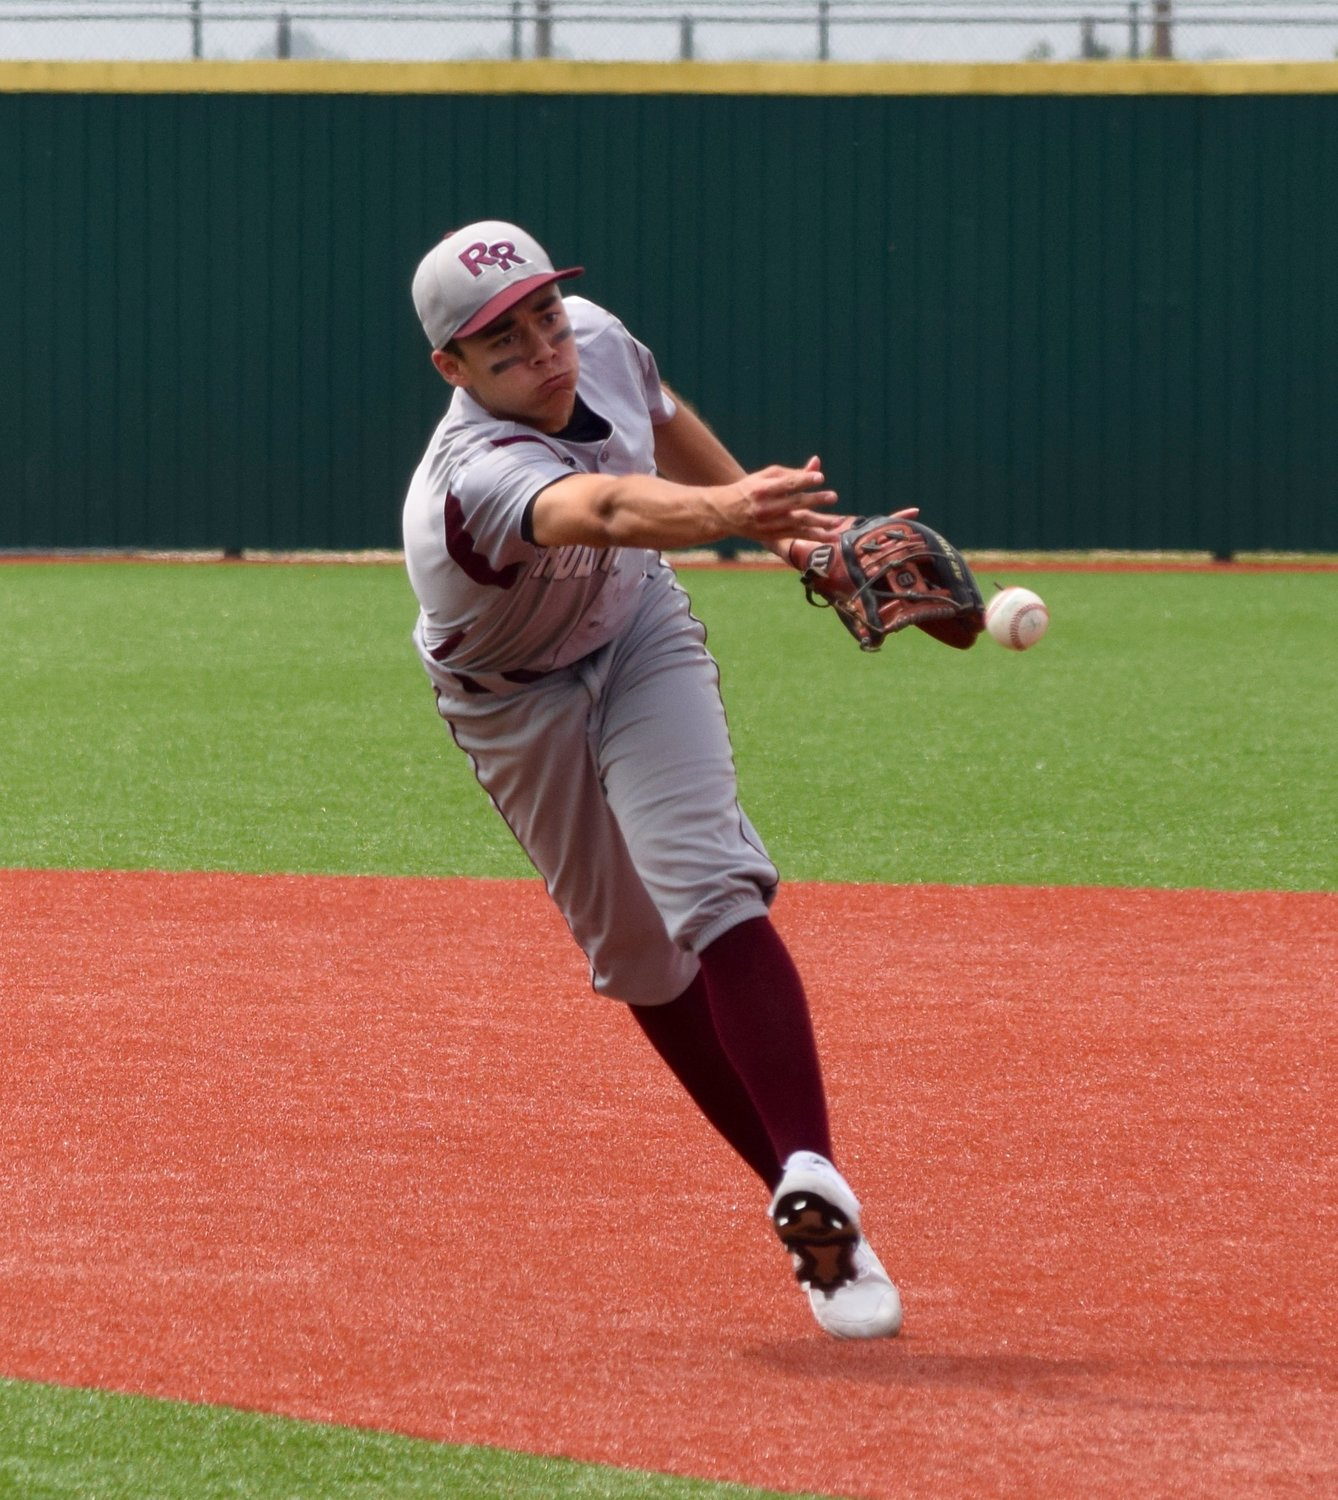 Julius Villareal and Round Rock lost to top-ranked Cy Ranch Saturday afternoon in Mumford and were eliminated from the playoffs.